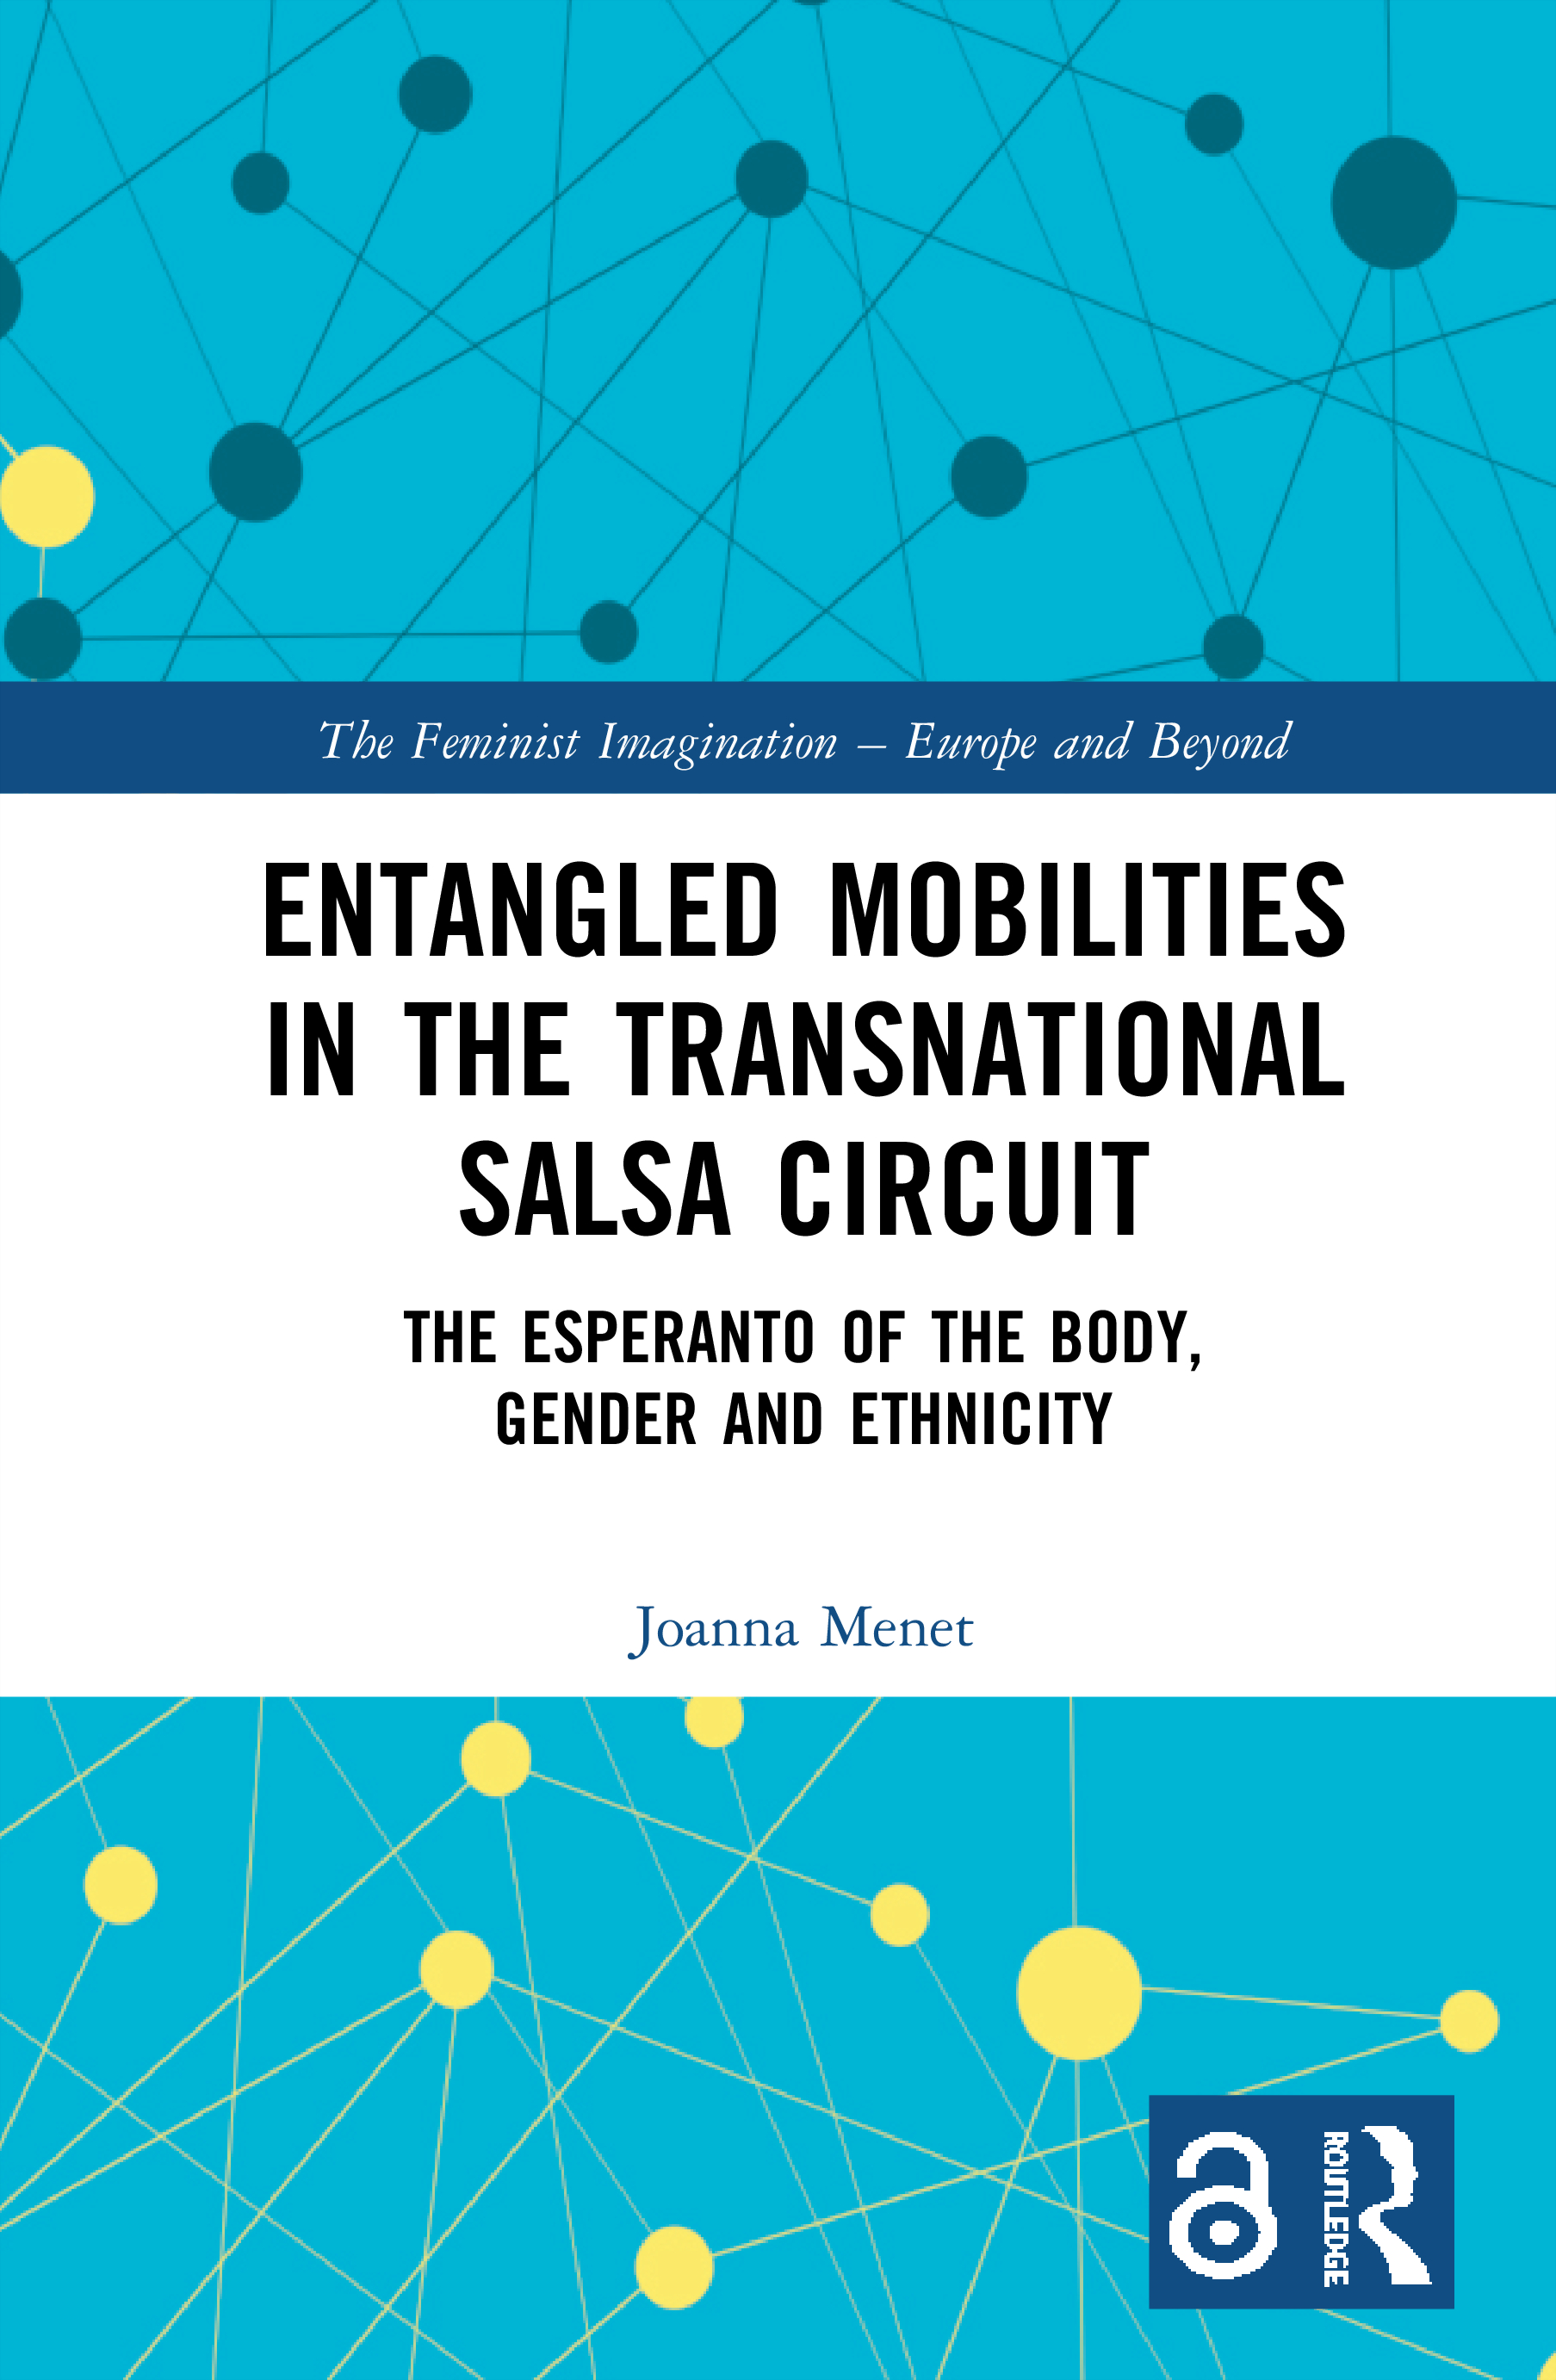 Entangled Mobilities in the Transnational Salsa Circuit: The Esperanto of the Body, Gender and Ethnicity book cover